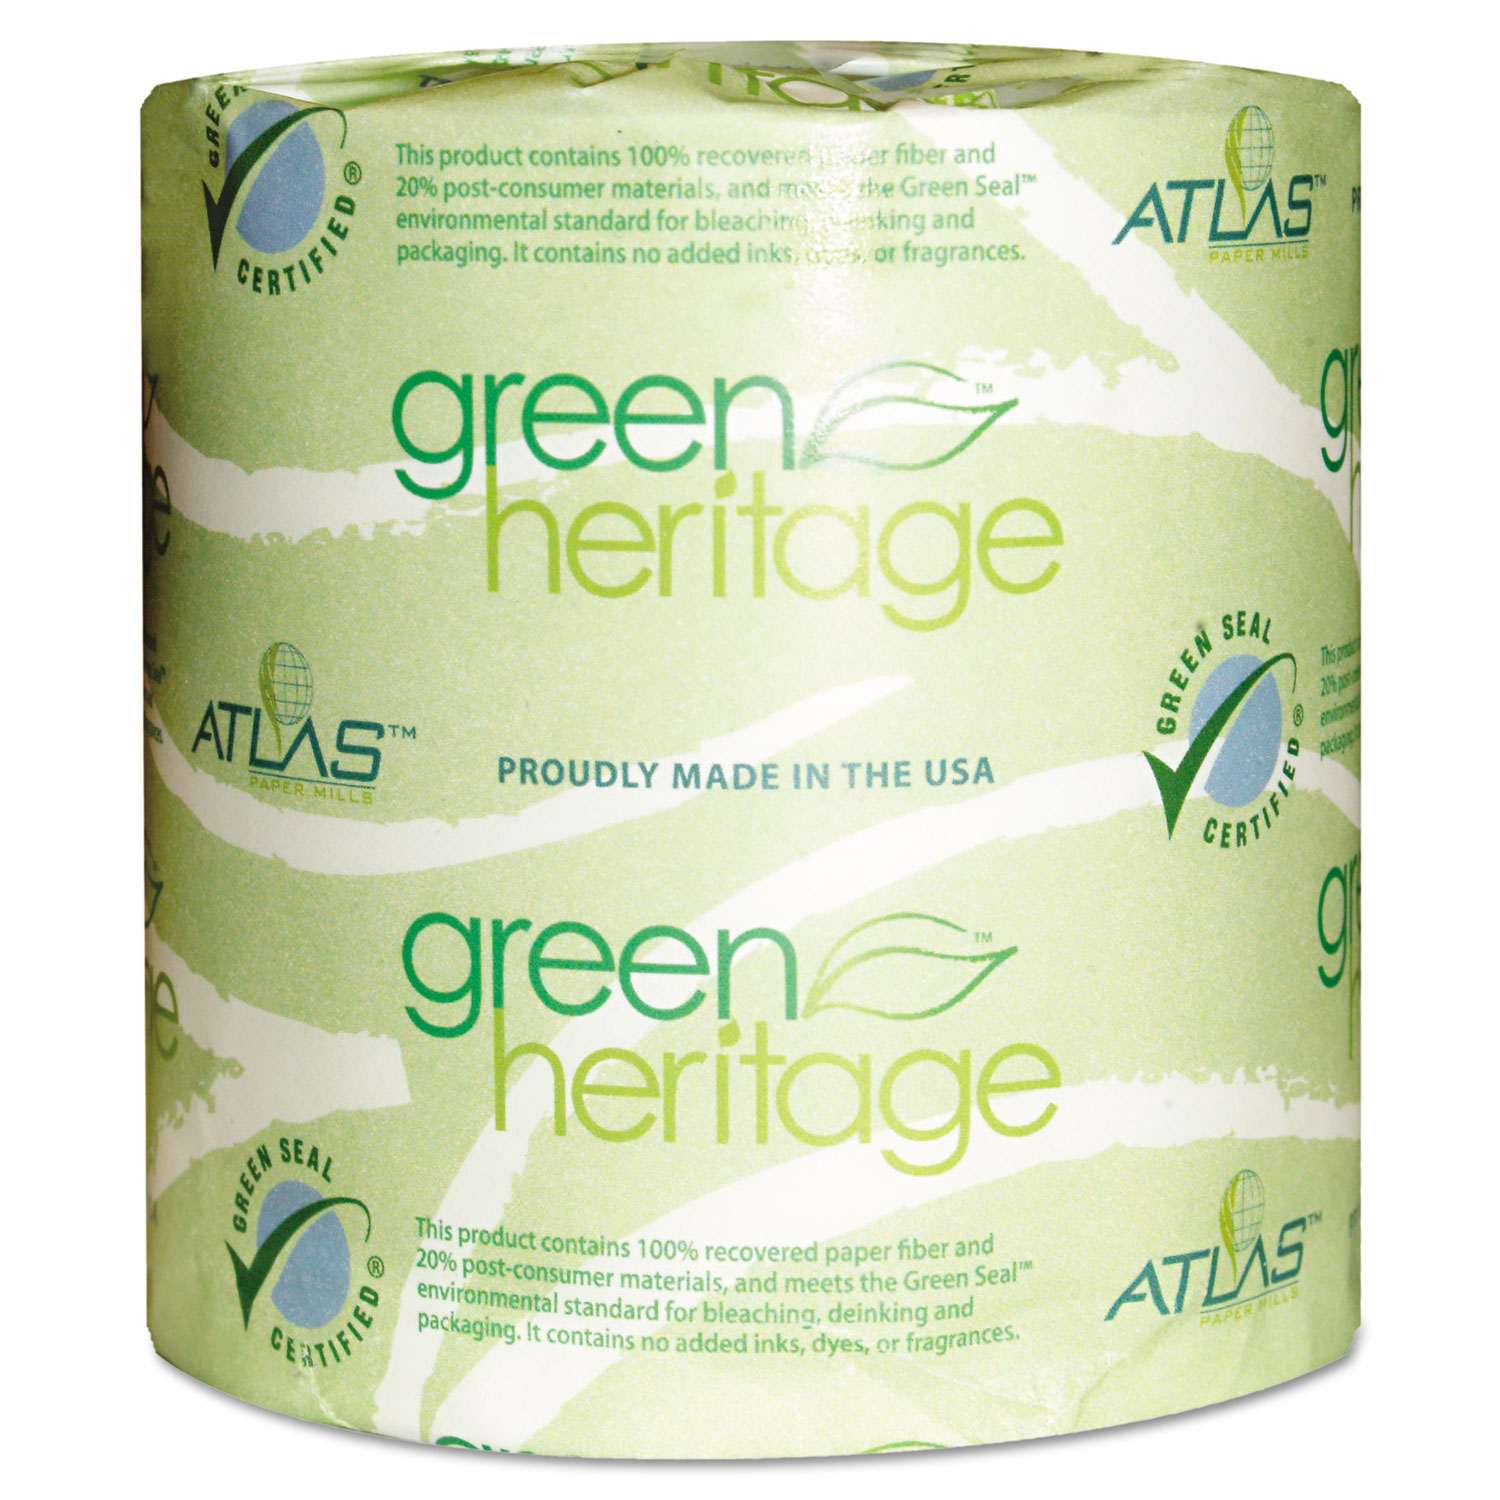 Green Heritage Toilet Tissue, 4 x 3.1 Sheets, 2 Ply, 500/Roll, 96 Roll/CT